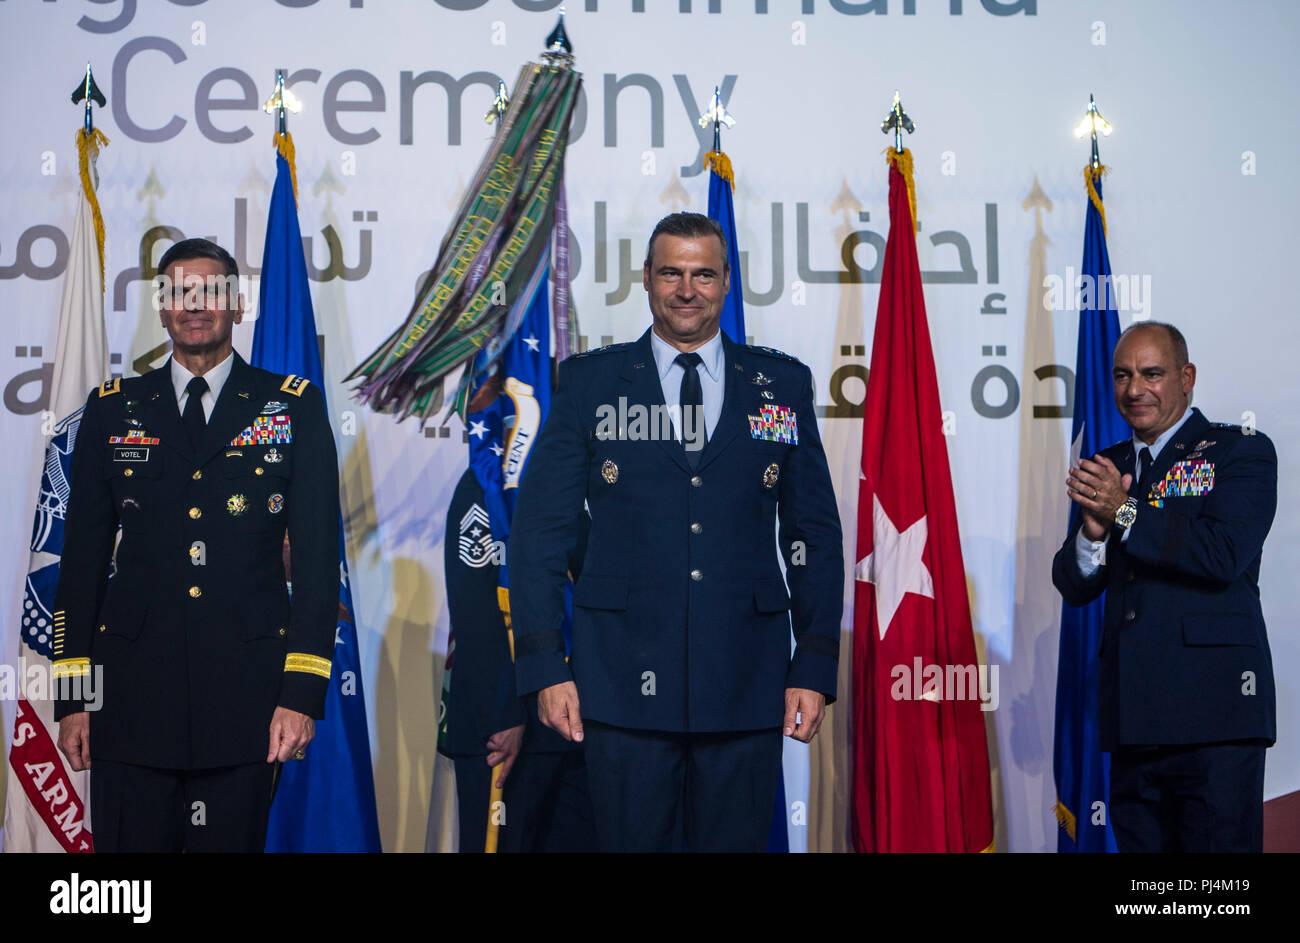 U.S. Army Gen. Joseph L. Votel, Commander of U.S. Central Command (CENTCOM), stands with U.S. Air Force Lt. Gen. Joseph T. Guastella Jr., Commander of U.S. Air Forces Central Command (AFCENT), and Air Force Lt. Gen. Jeffrey L. Harrigian, outgoing AFCENT commander, during a change of command ceremony at Al Udeid Air Base, Qatar, Aug. 30, 2018. Guastella entered the Air Force in 1987 as a graduate of the U.S. Air Force Academy. He has flown the F-16 Fighting Falcon and A-10 Thunderbolt II, served as the wing commander of the 455th Air Expeditionary Wing at Bagram Airfield, Afghanistan, has had m Stock Photo